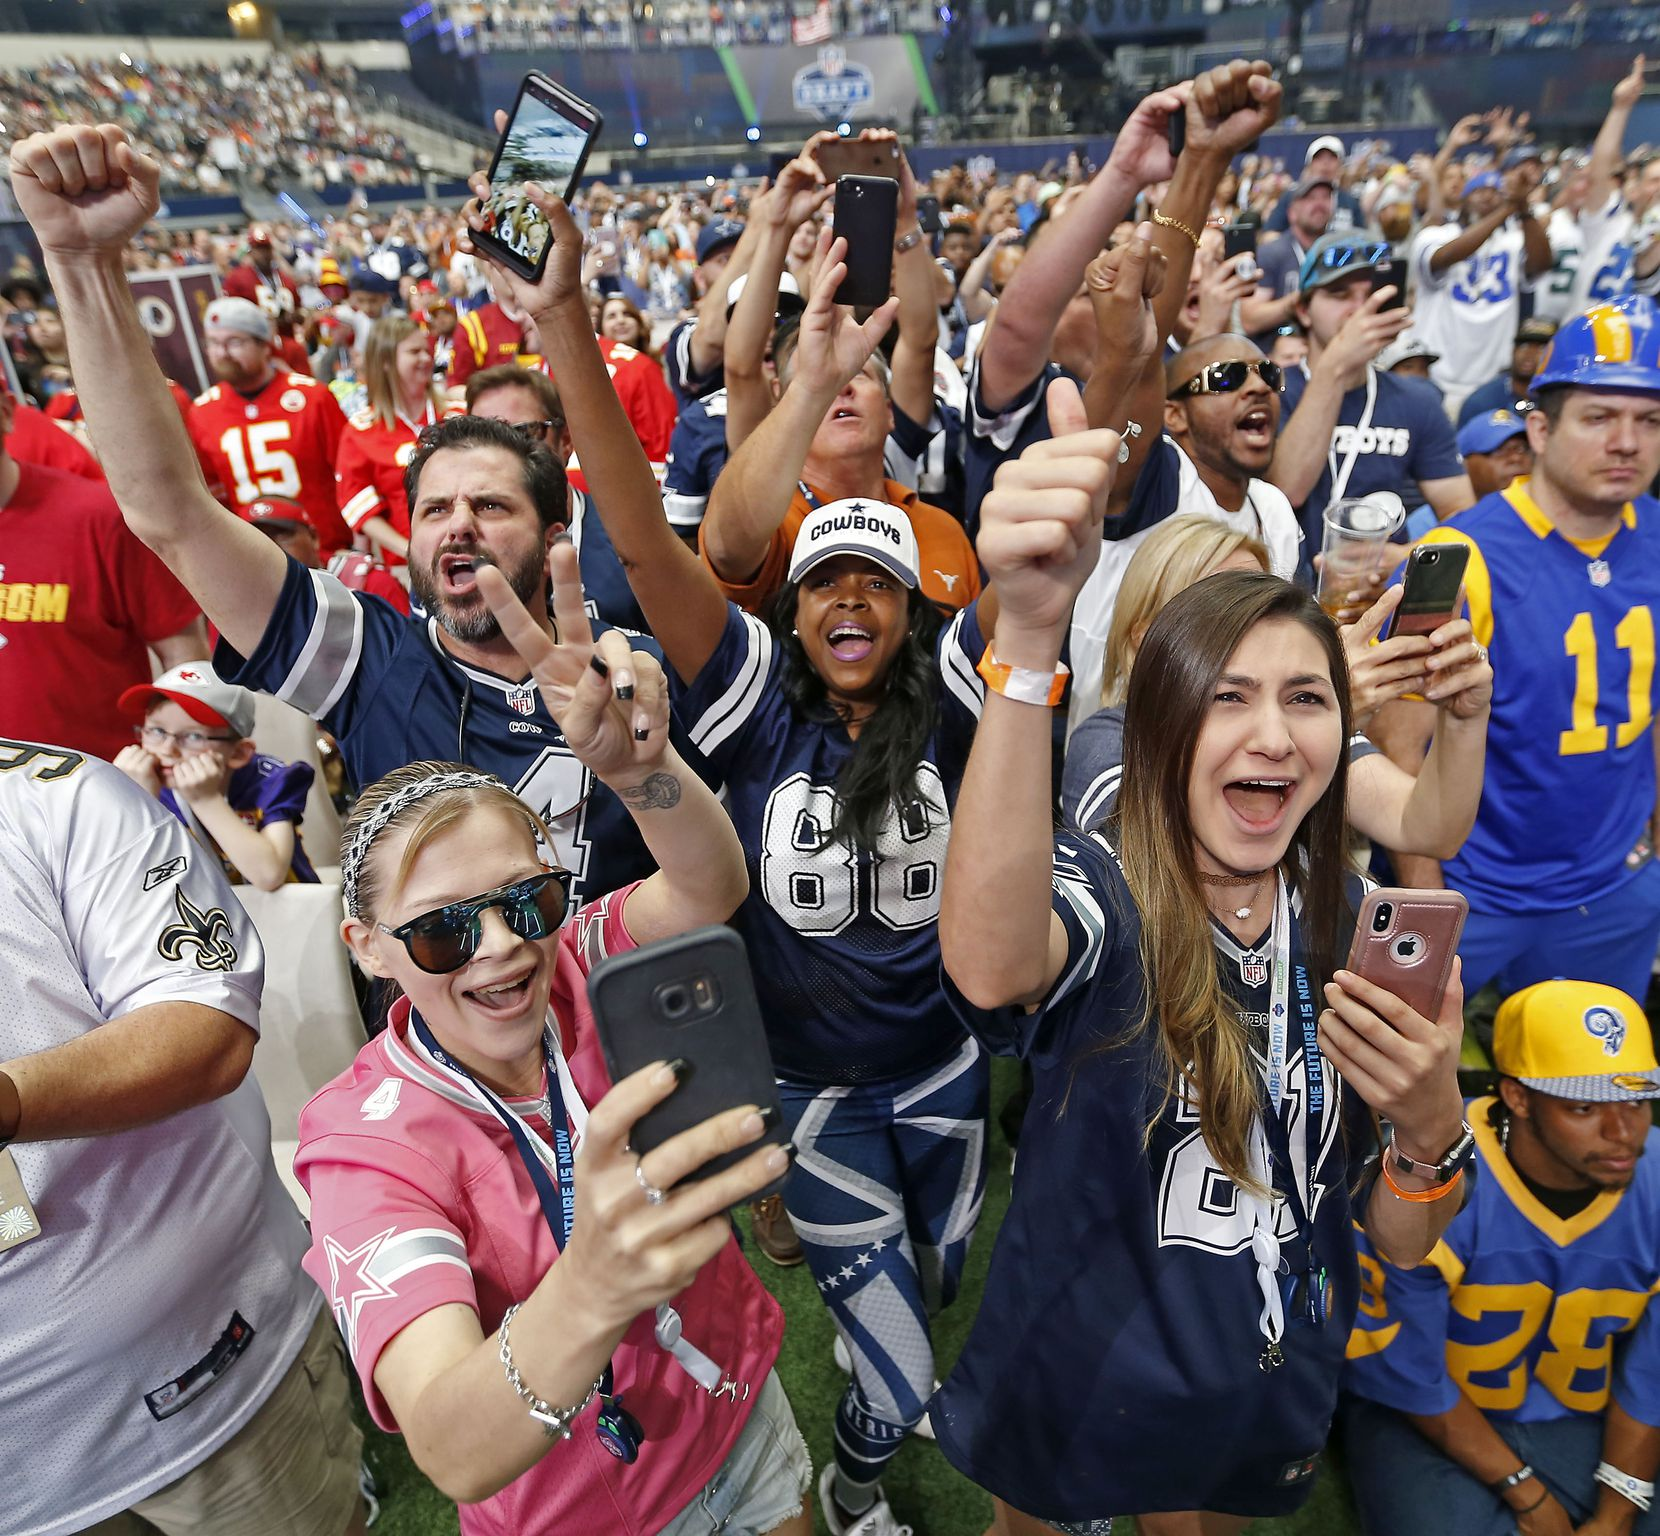 Dallas Cowboys fans including Lisa Morton, who wears a #88 jersey, cheered when the Cowboys selected Dorance Armstrong in Round 4 of the 2018 NFL Draft at AT&T Stadium in Arlington, Texas, in April 2018. The draft filled Dallas hotel rooms more than any other event this year.